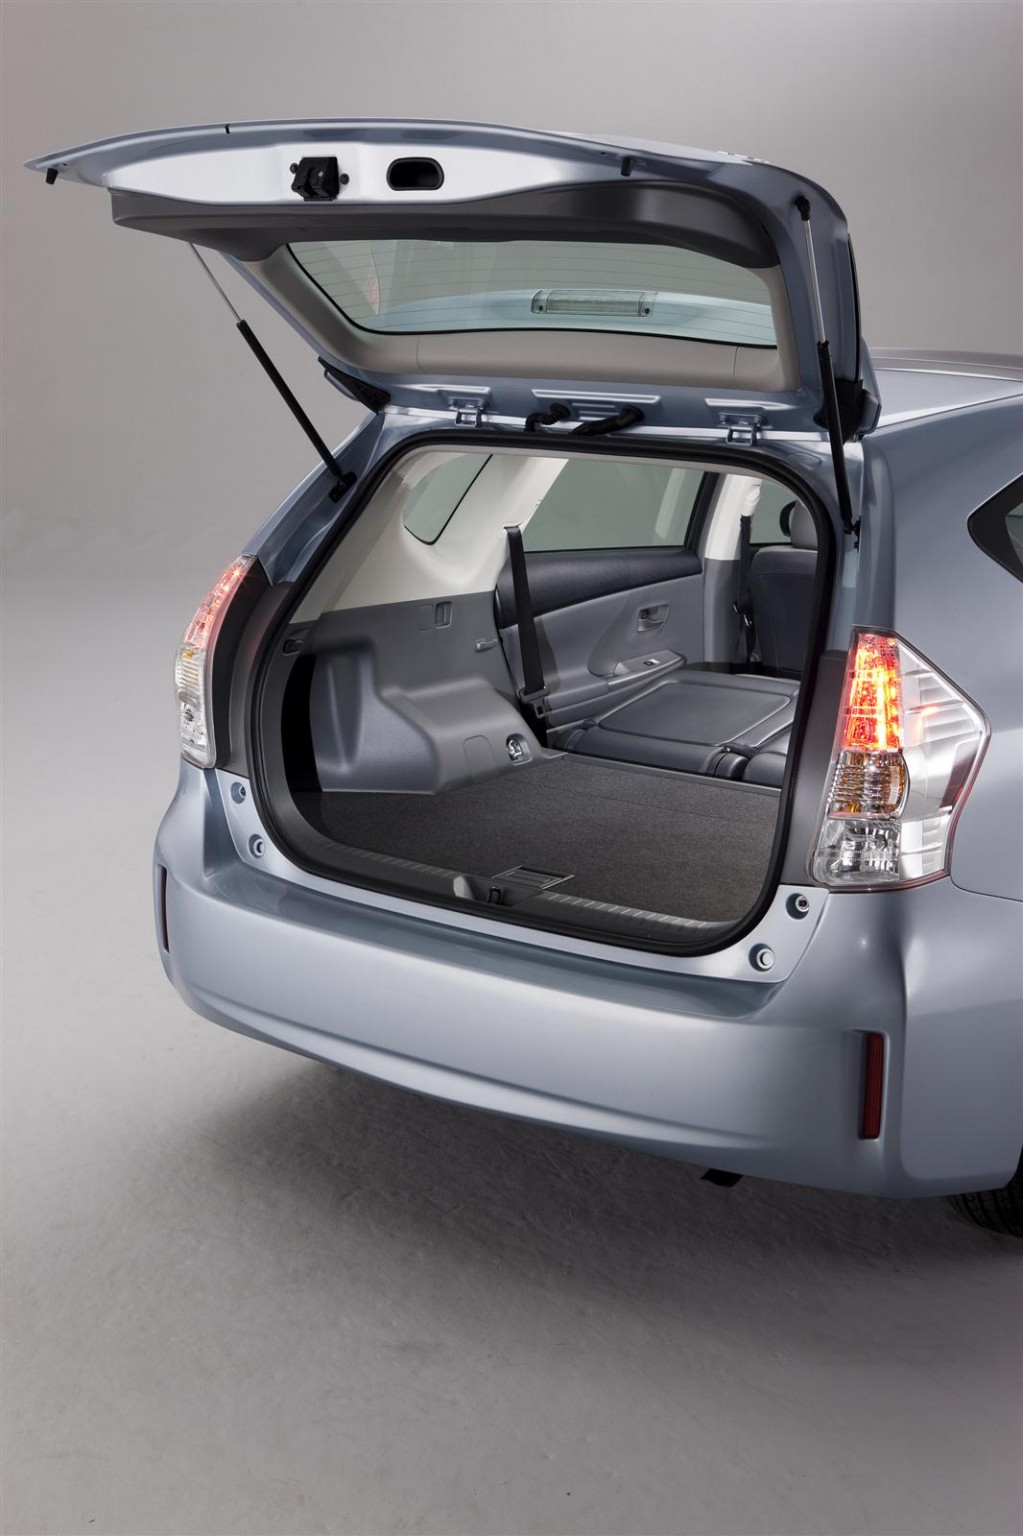 2012 toyota prius v station wagon minivan arrives this fall. Black Bedroom Furniture Sets. Home Design Ideas